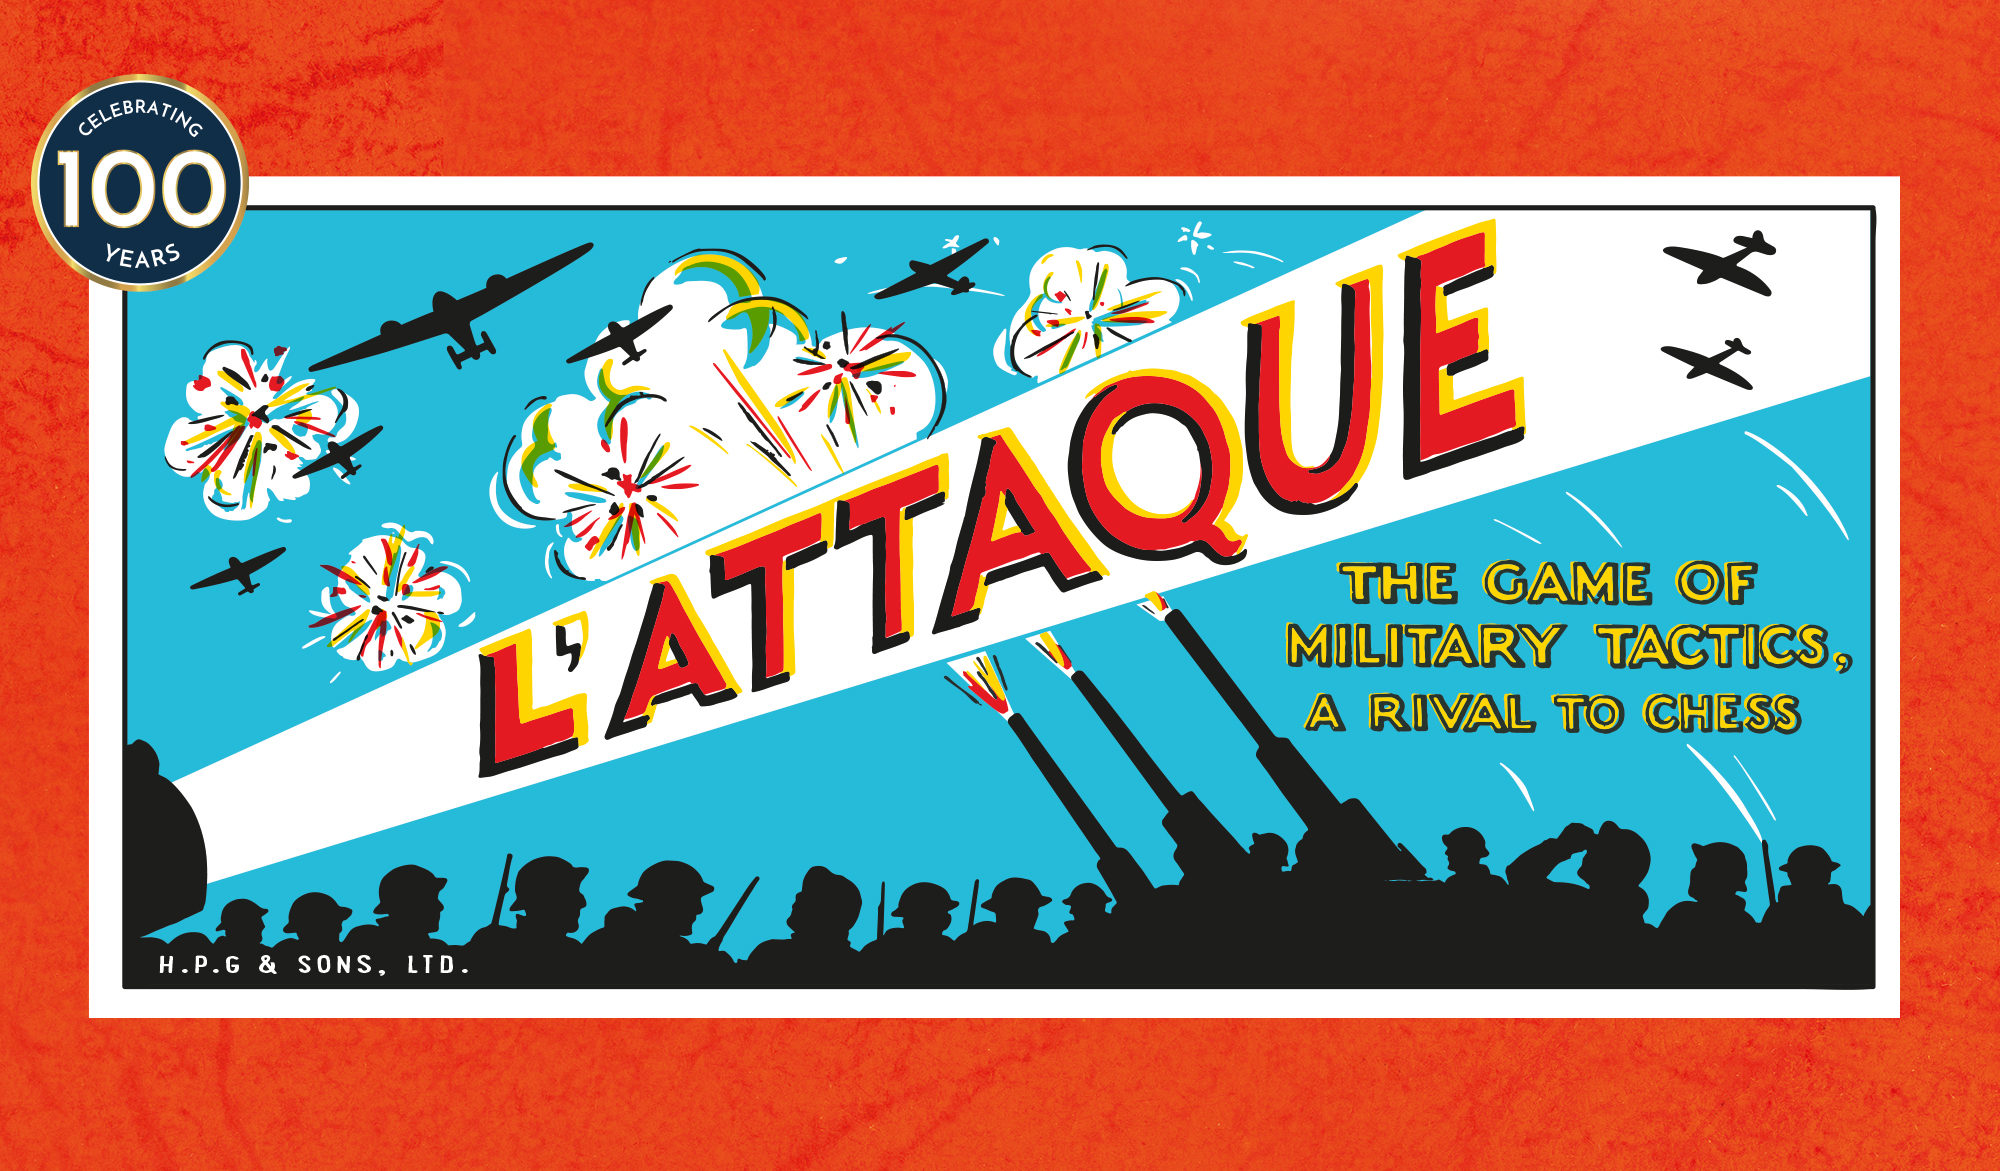 L'Attaque front box illustration